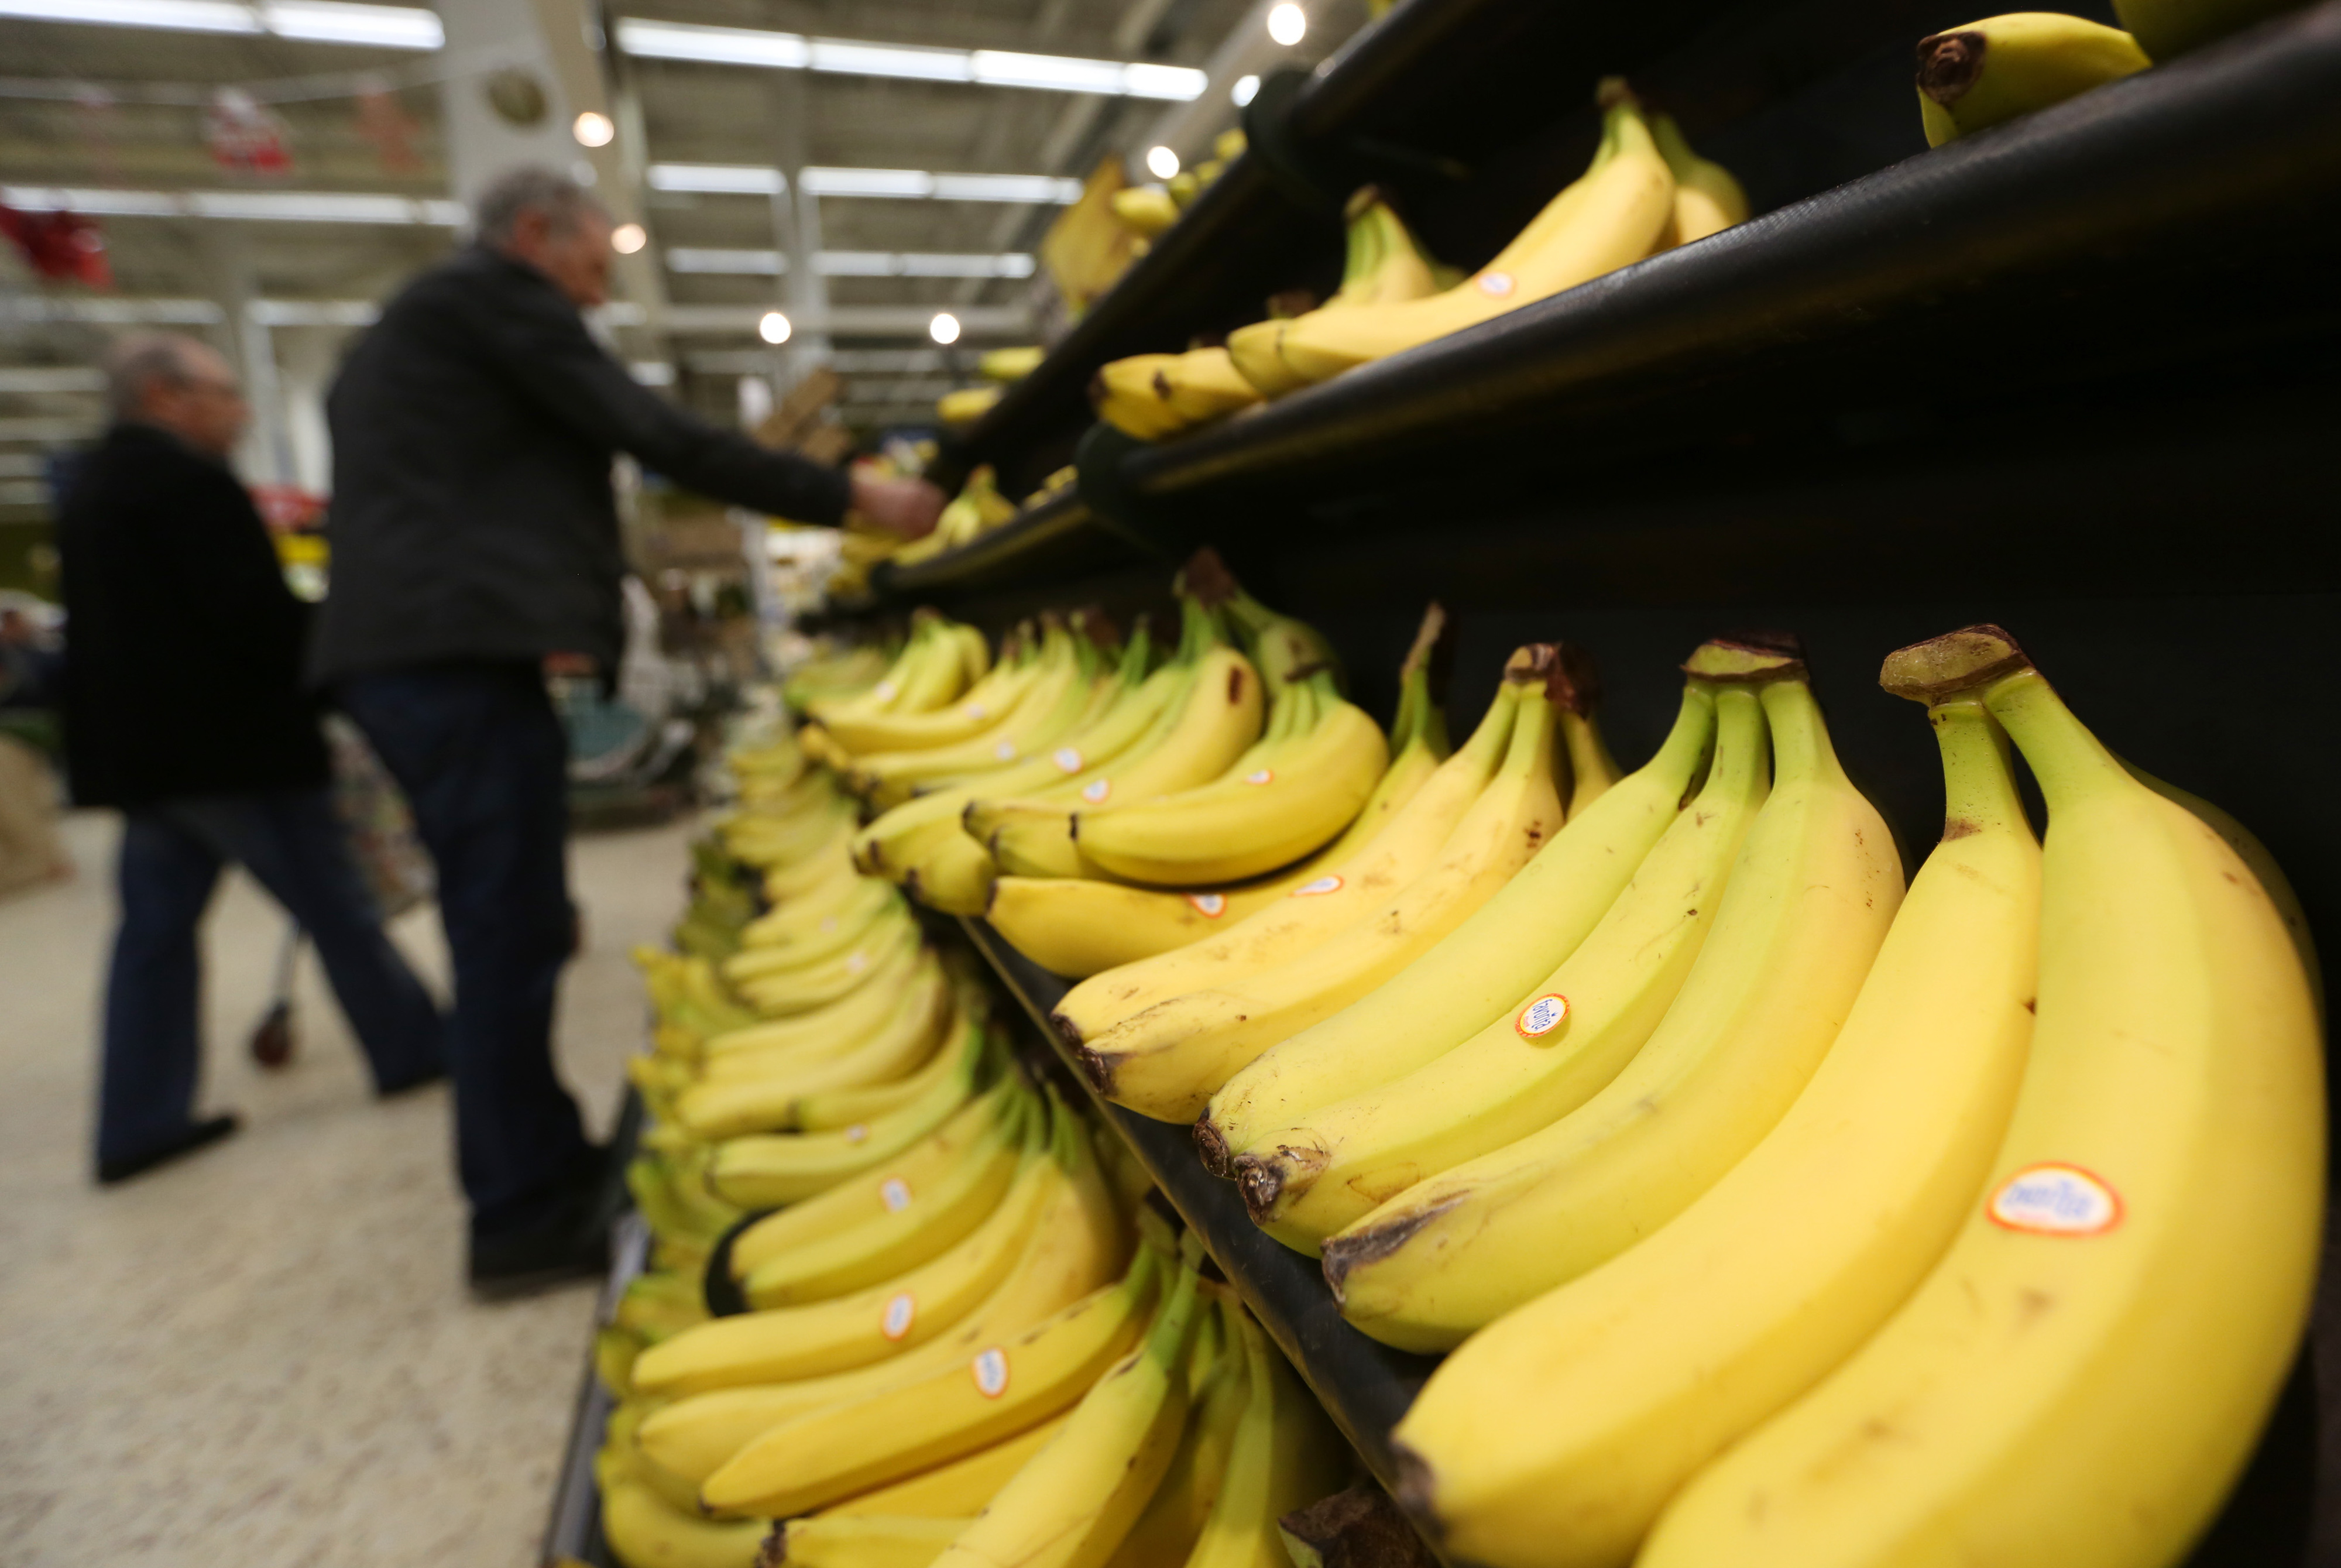 8 things you didn't know about bananas | PBS NewsHour